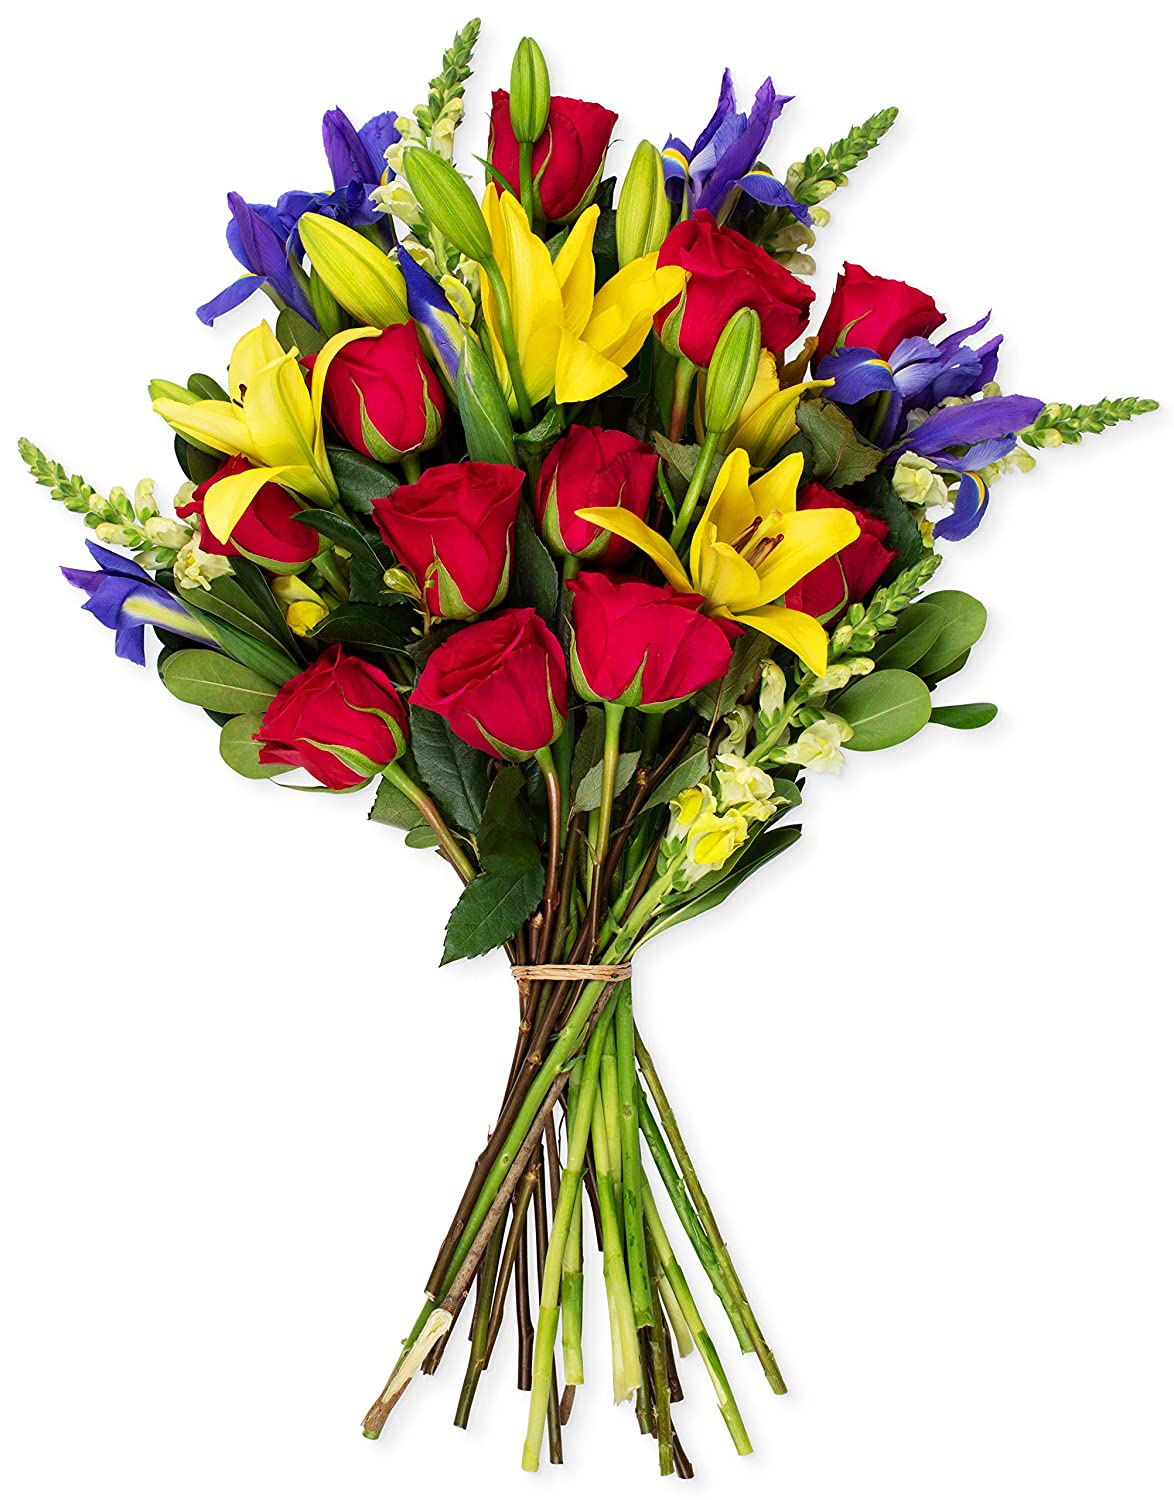 Amazon Benchmark Bouquets Joyful Wishes No Vase Fresh Cut Flowers Format Mixed Flower Arrangements Grocery Gourmet Food